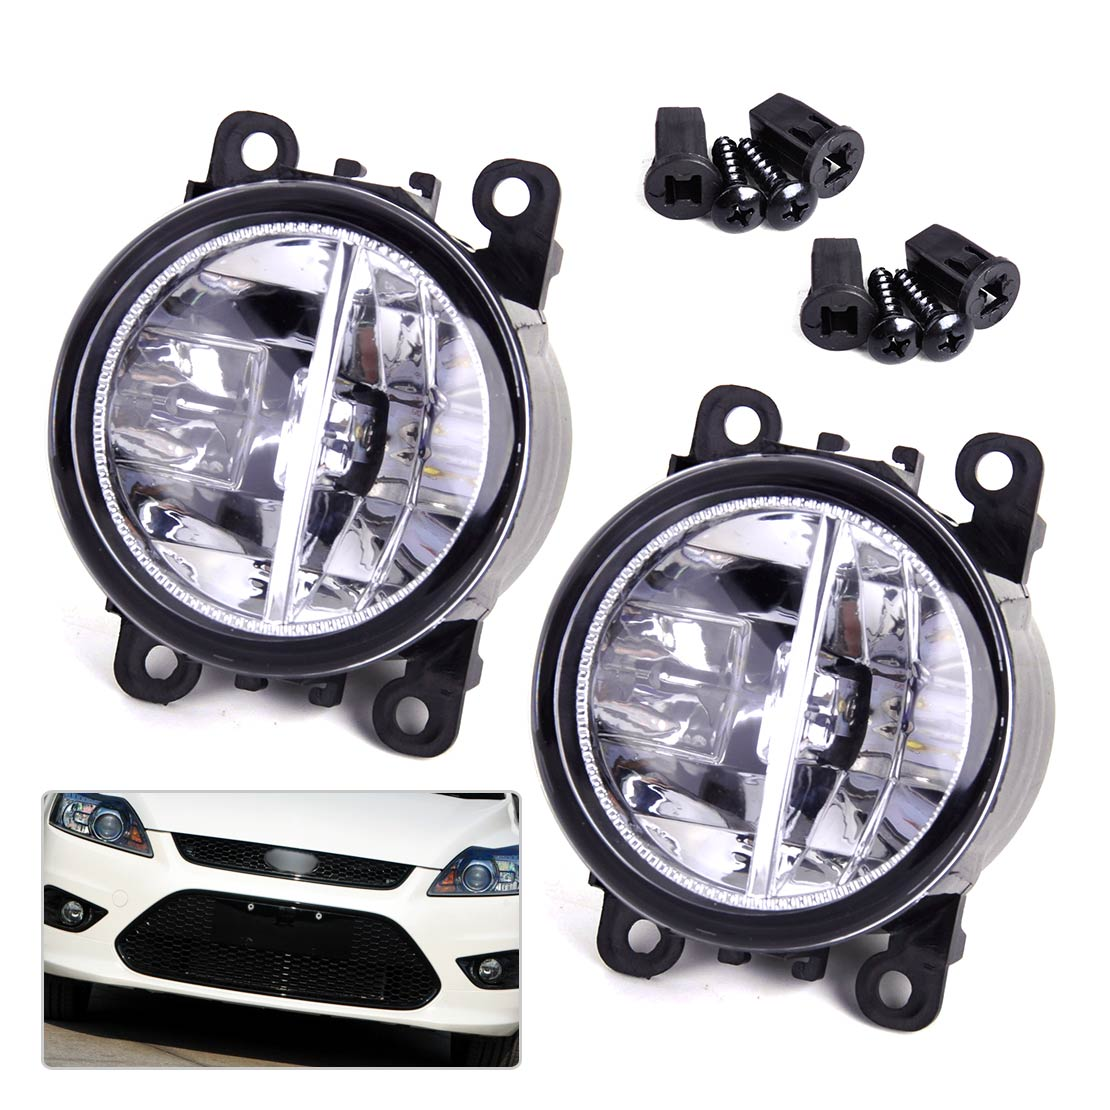 beler Right Left LED Fog Light Lamp for Ford Focus Honda Acura Lincoln Nissan Subaru Suzuki 4F9Z-15200-AA 33900STKA11 AC2592111 beler fog light lamp h11 female adapter wiring harness sockets wire connector for ford focus fiesta acura nissan honda subaru